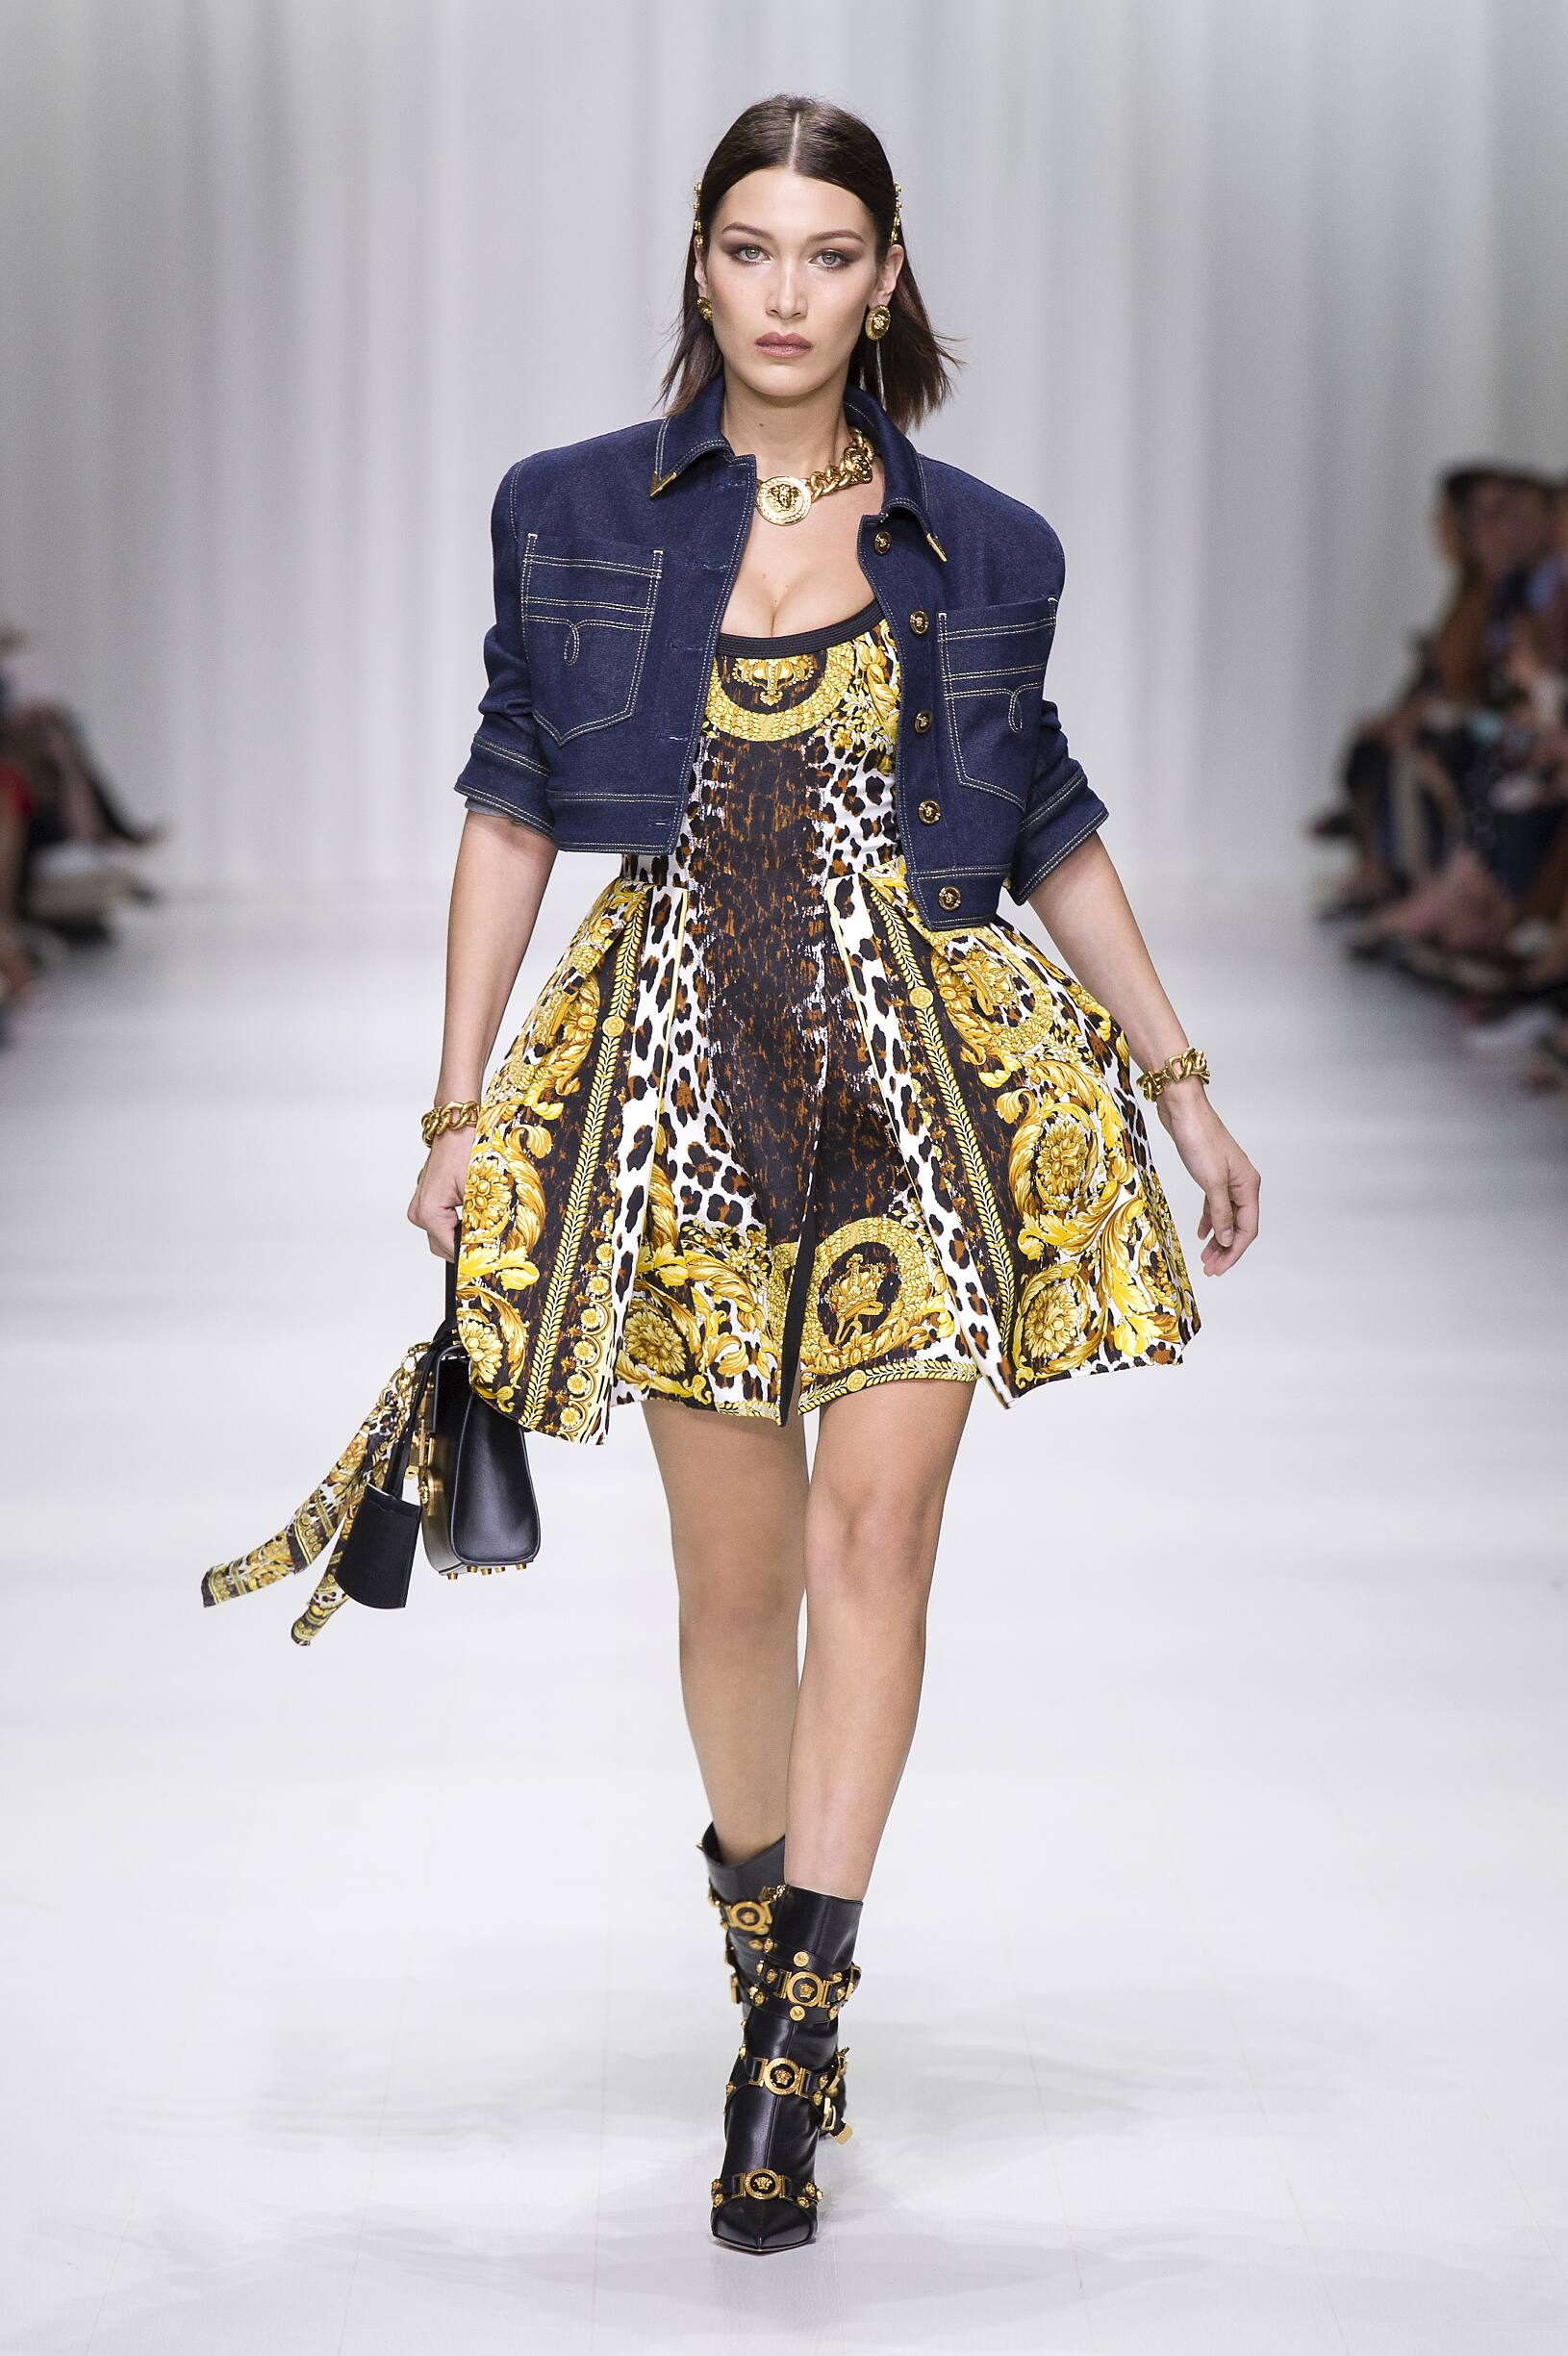 Fashion Model Png Free Download: VERSACE SPRING SUMMER 2018 WOMEN'S COLLECTION